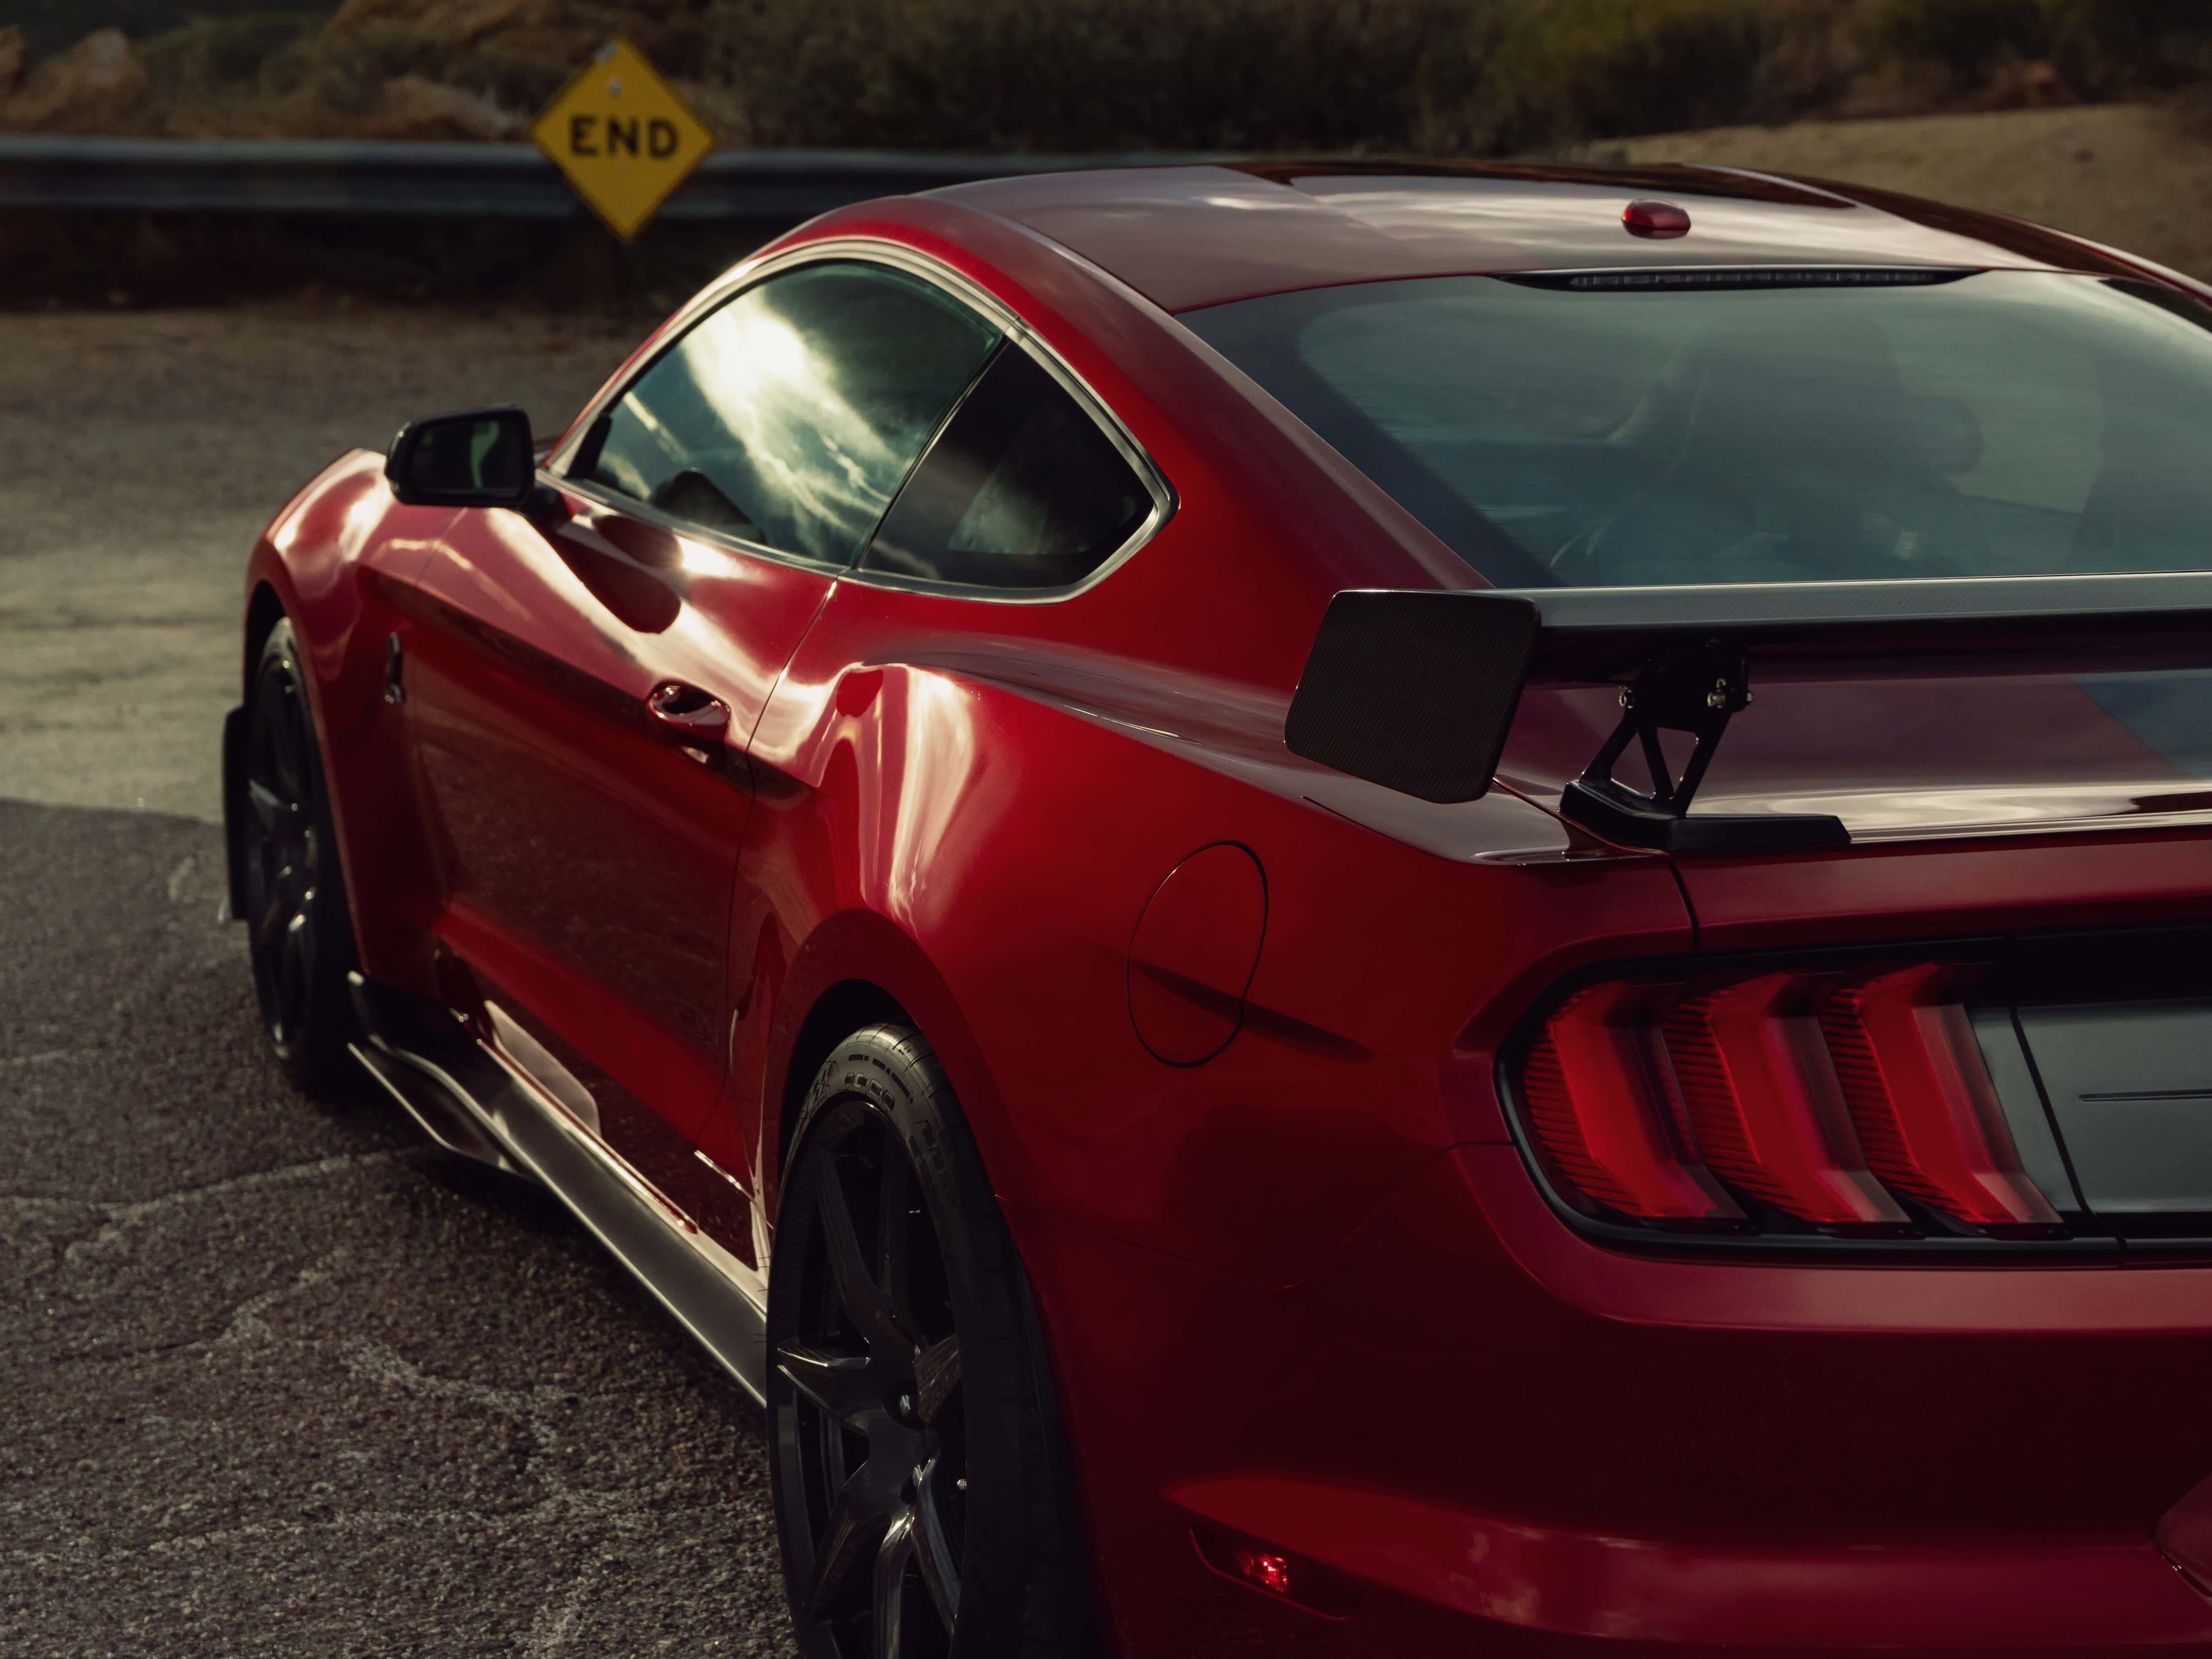 The rear of the new Mustang GT500